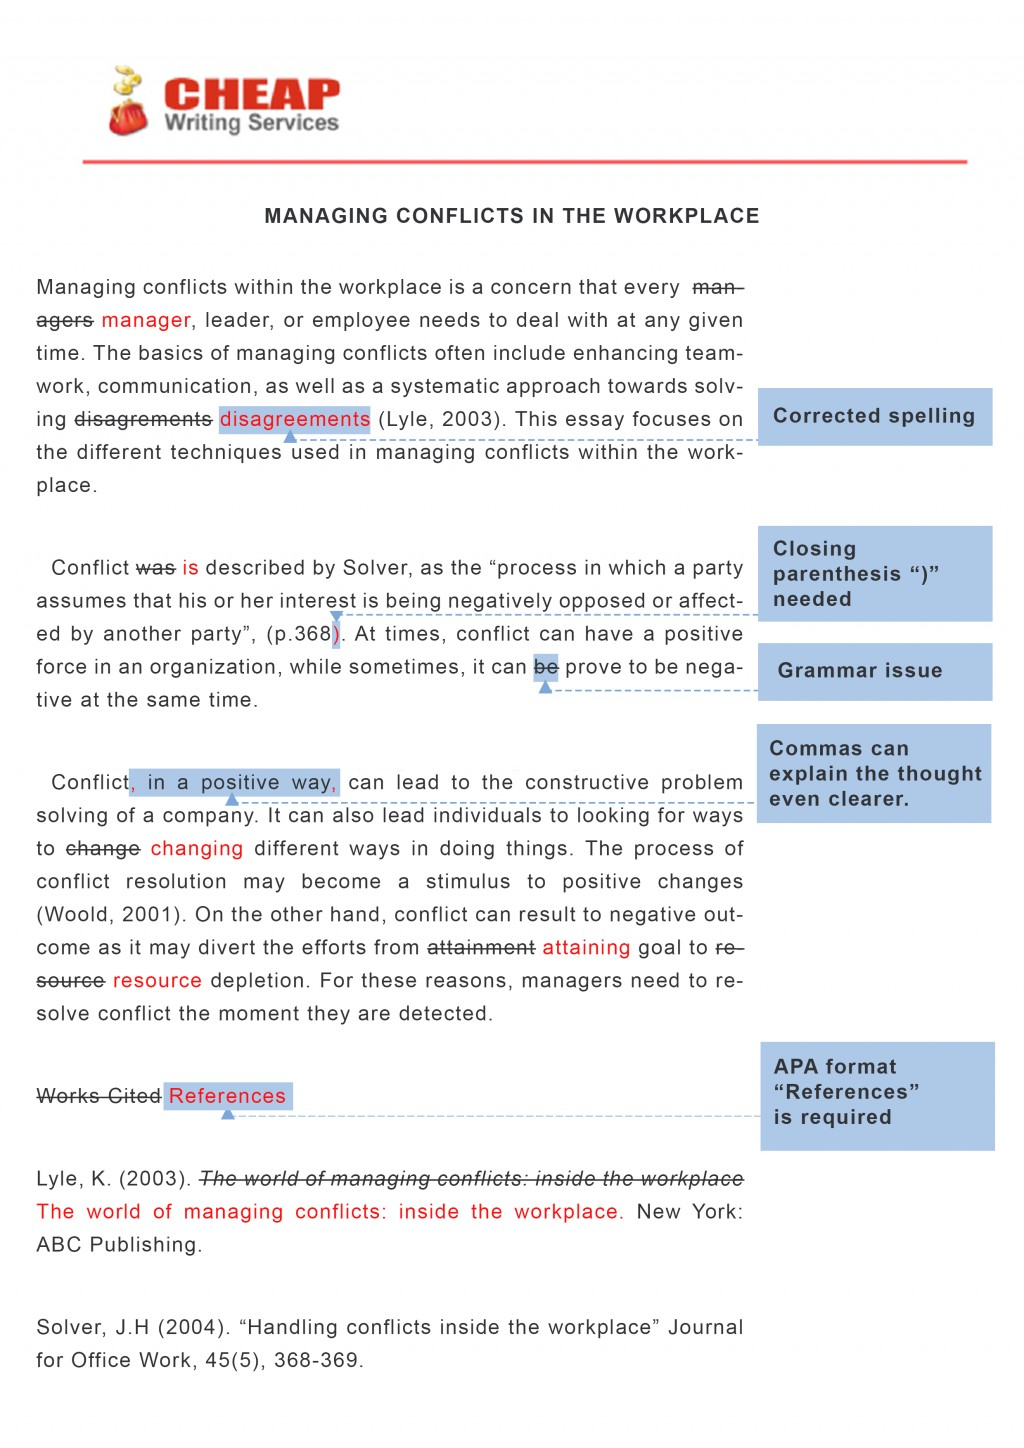 003 Essay Example Editing Cheap Top Writing Service Canada Australia Reviews Large